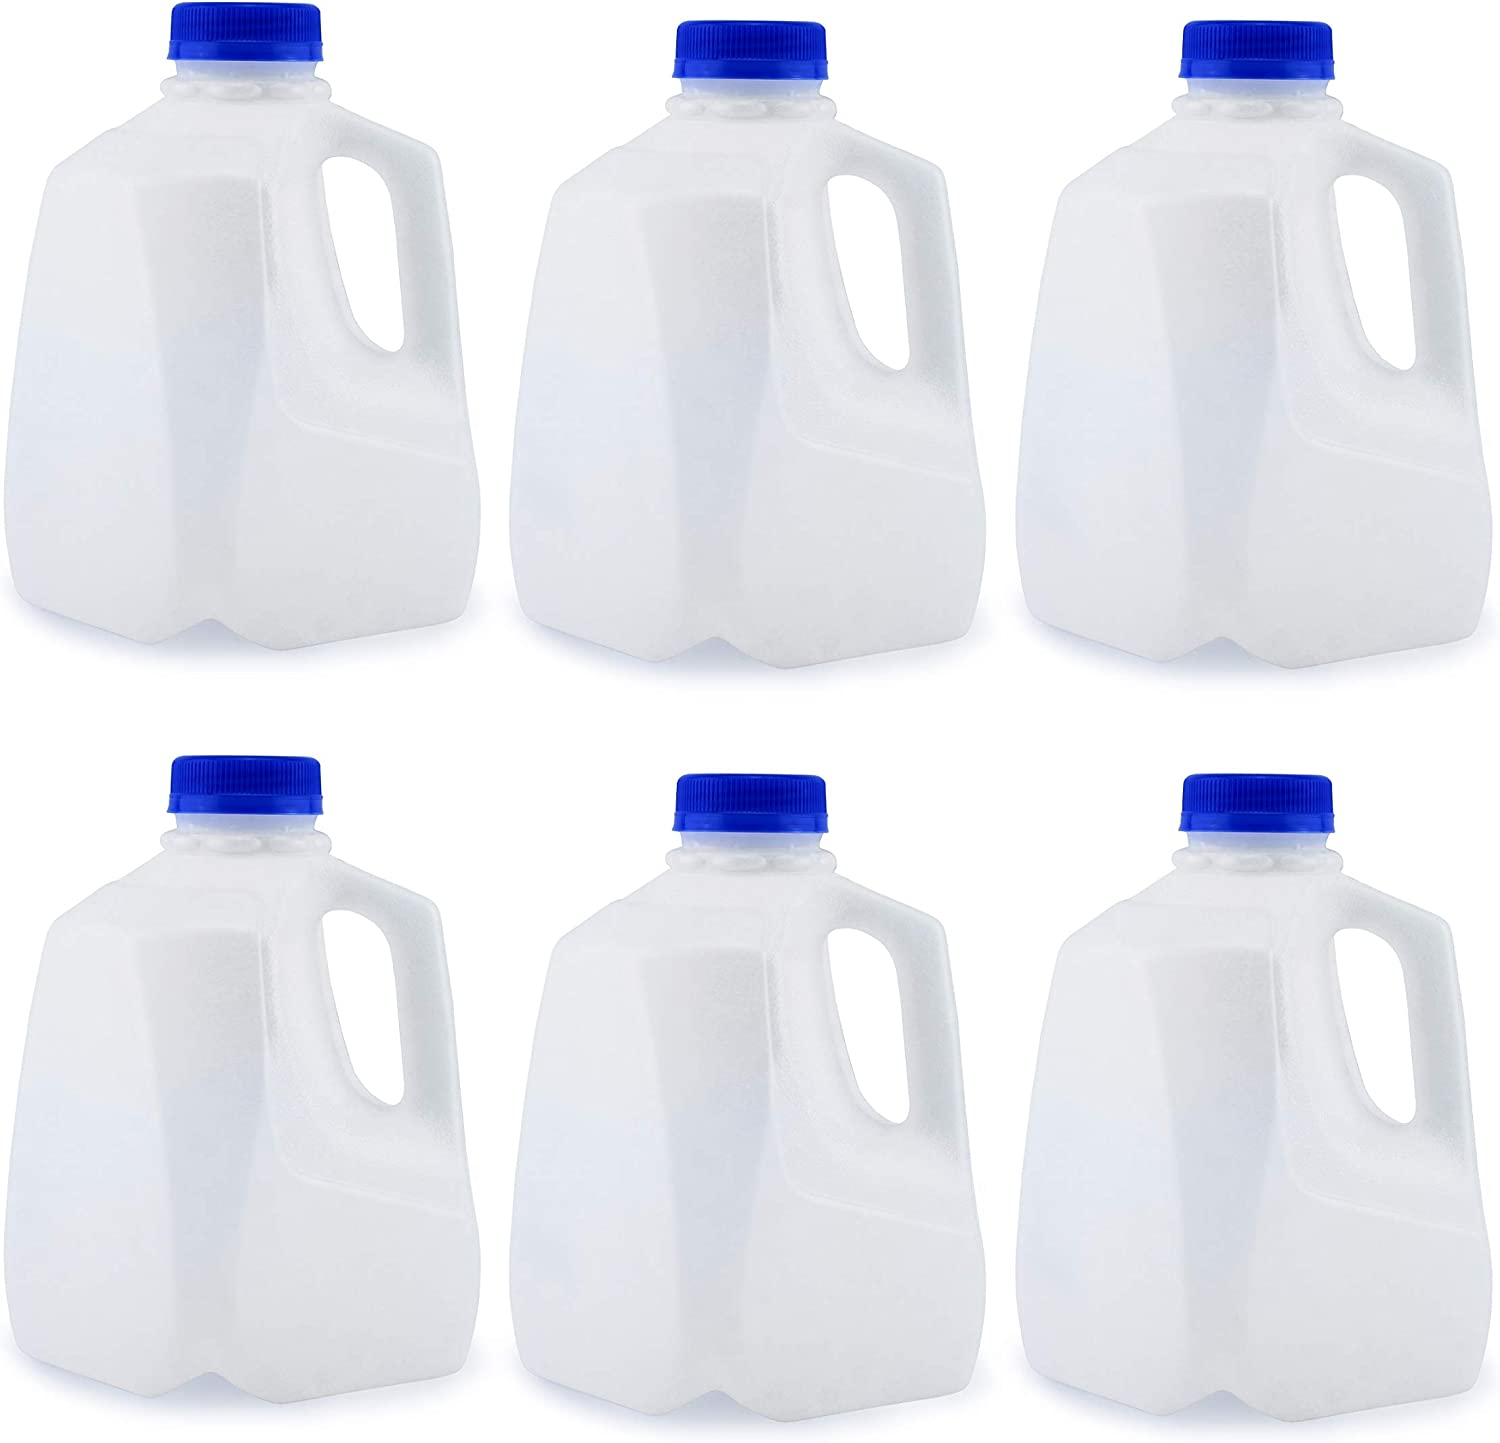 Cornucopia 32-Ounce Plastic Jugs (6-Pack); Bottles with Caps for Juice, Water, Sports and Protein Drinks and Milk, BPA-Free